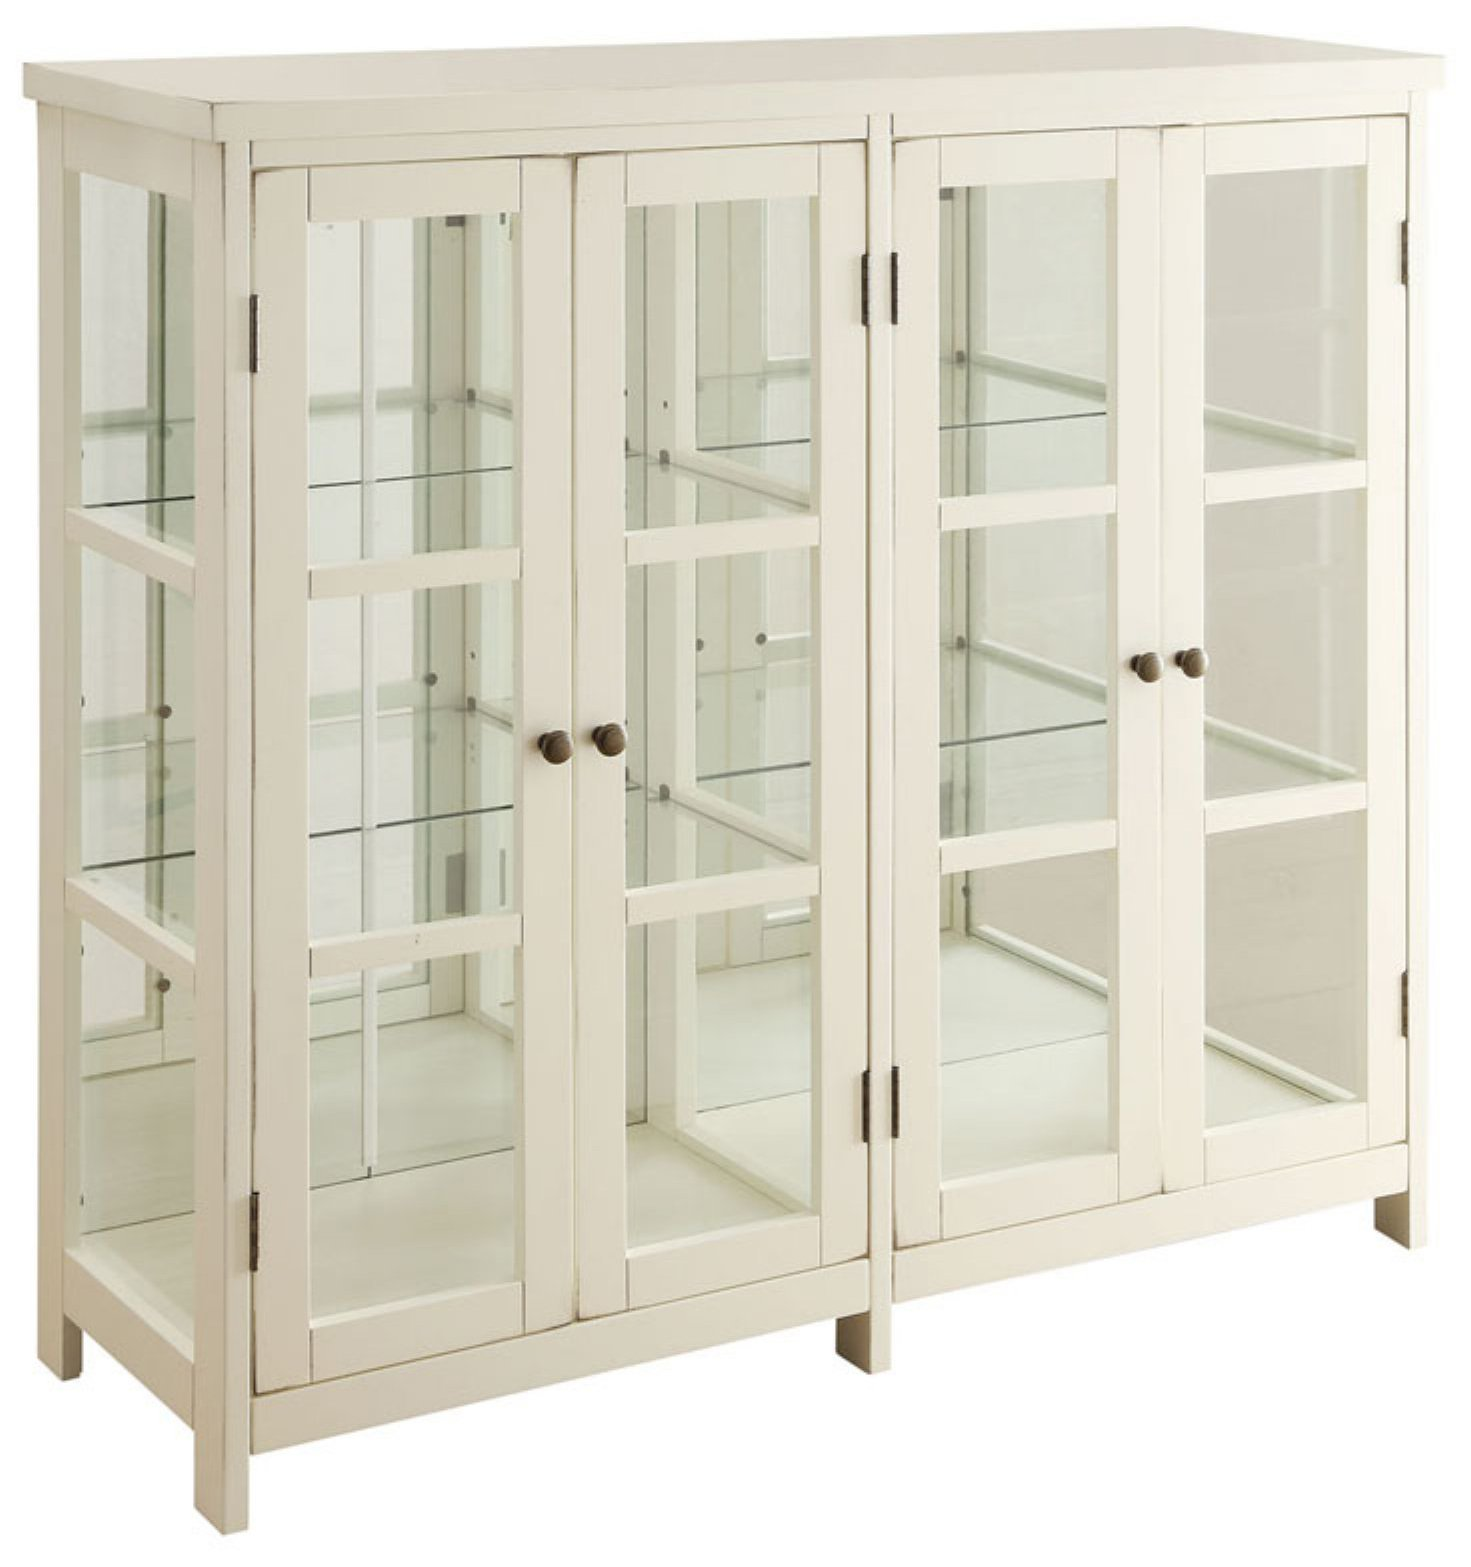 Coaster Home Furnishings Accent Display Cabinet, White by Coaster Home Furnishings